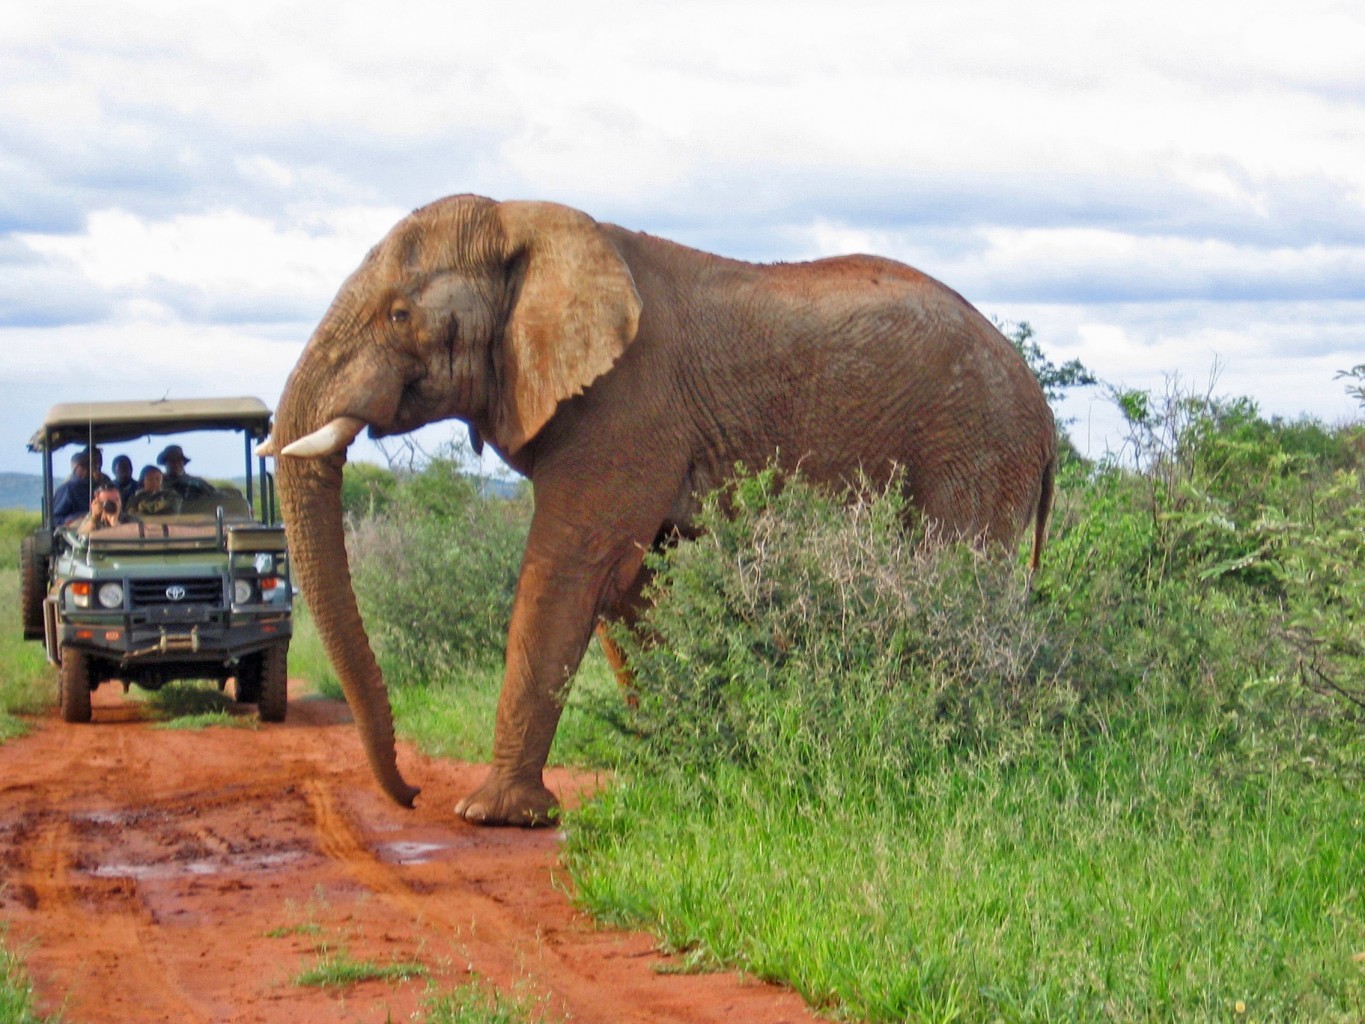 Student Travel - South Africa Safari - Elephant Crossing